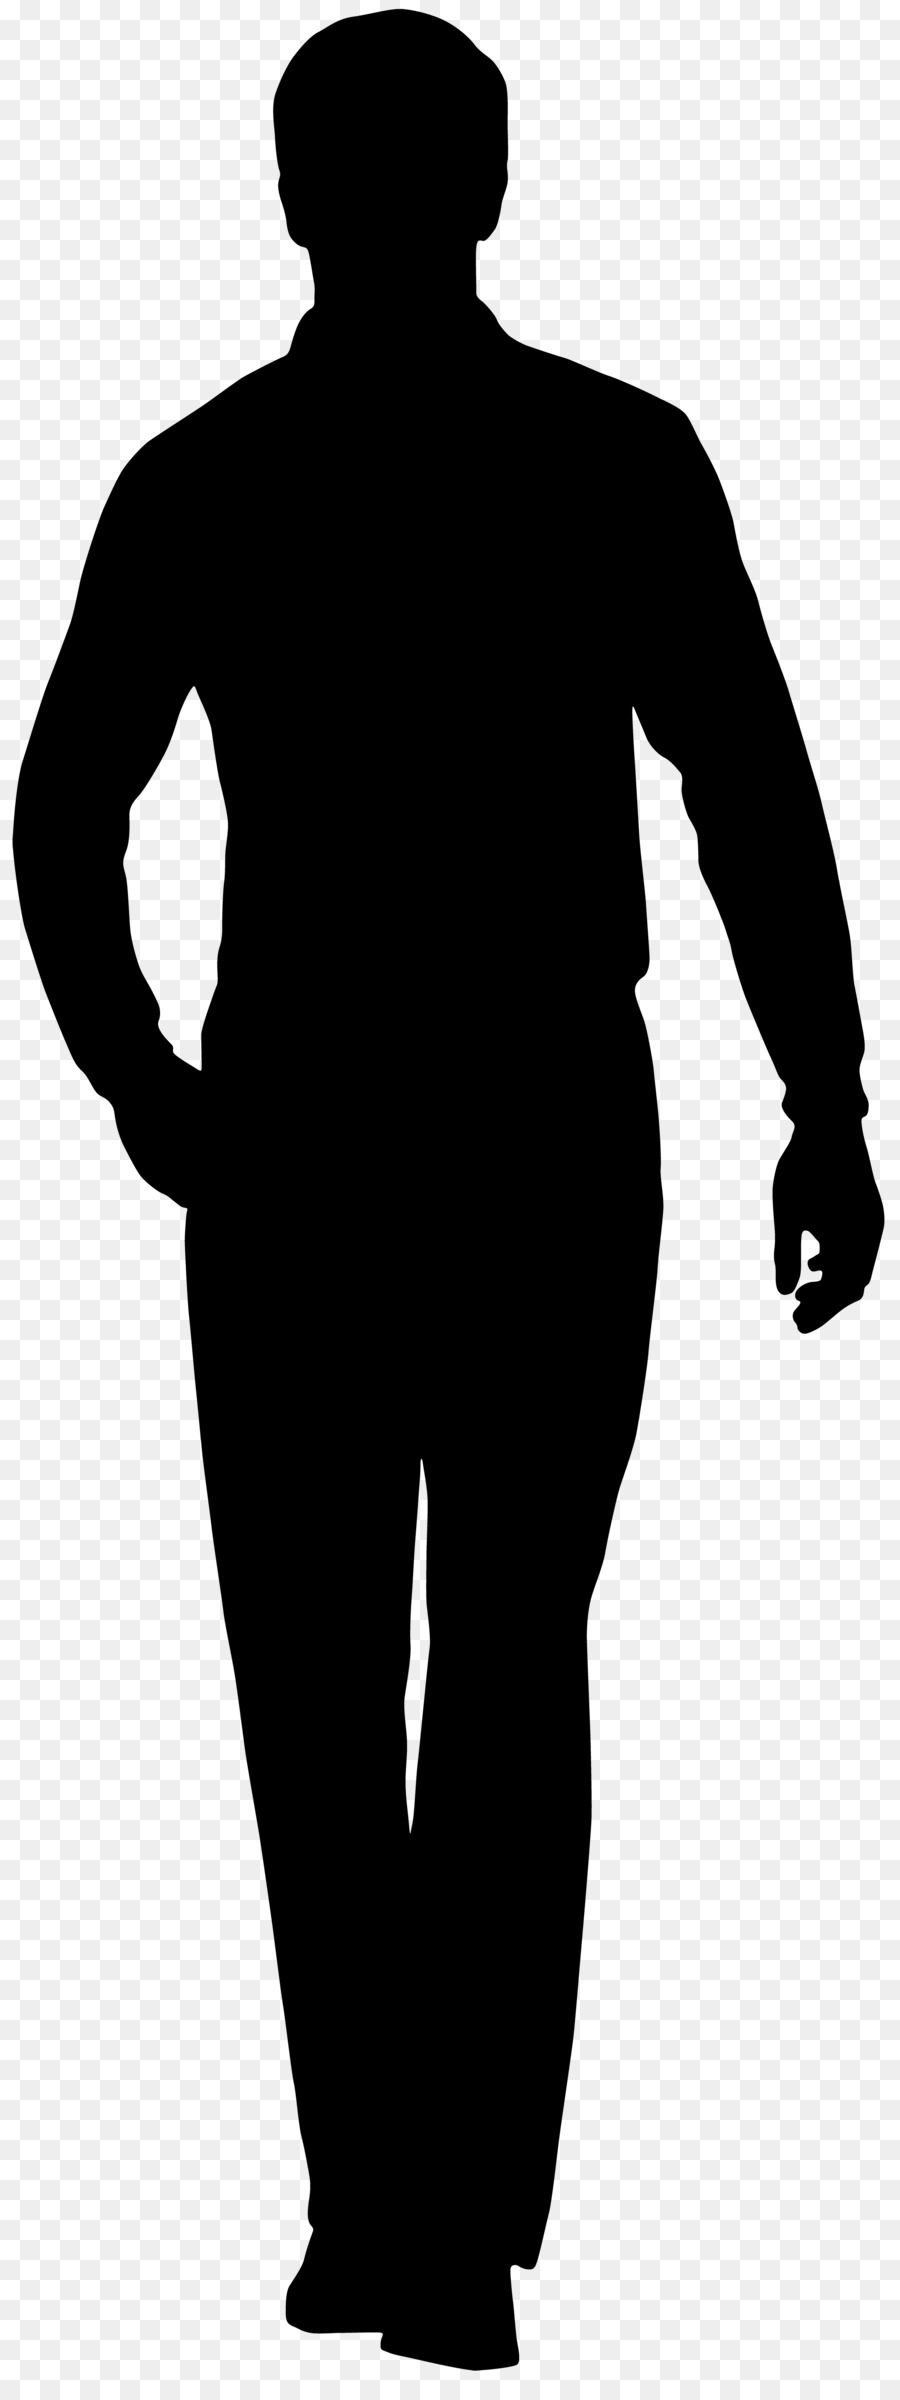 Silhouette Transparent Background : silhouette, transparent, background, Silhouette, Transparent, Background,, Download, Clipart, Library